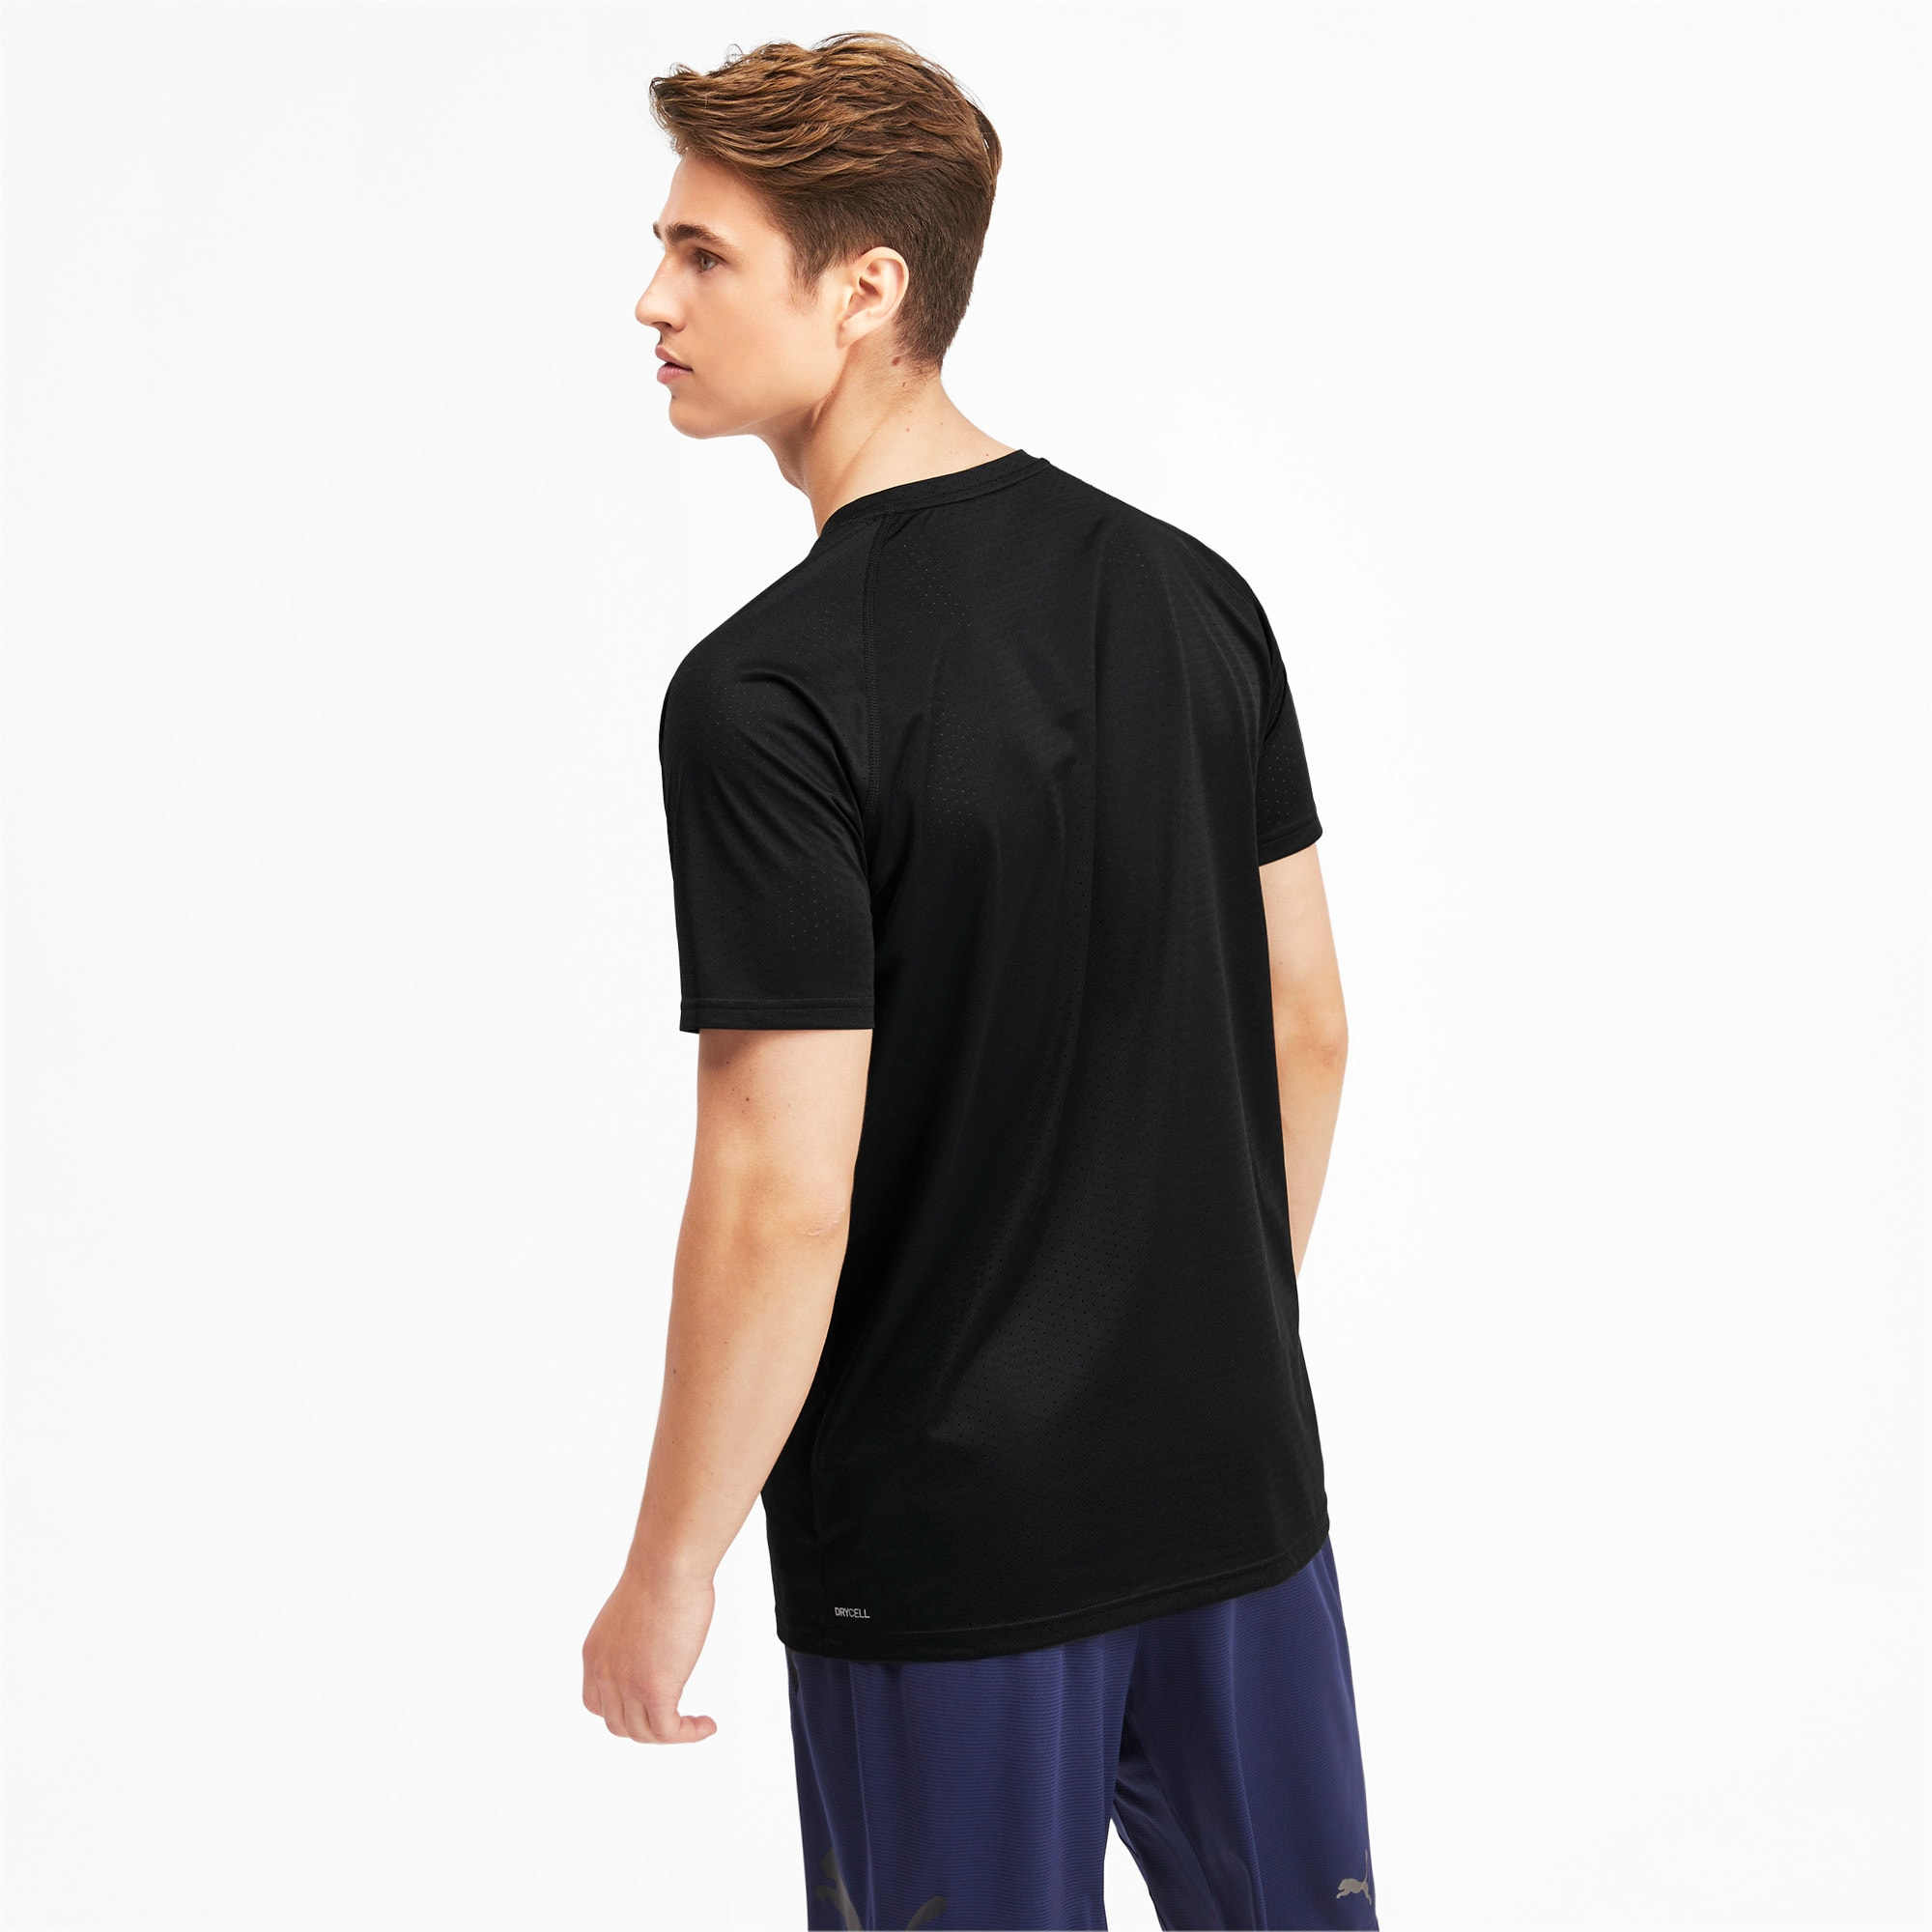 Thumbnail 2 of Short Sleeve Men's Tech Training Tee, Puma Black, medium